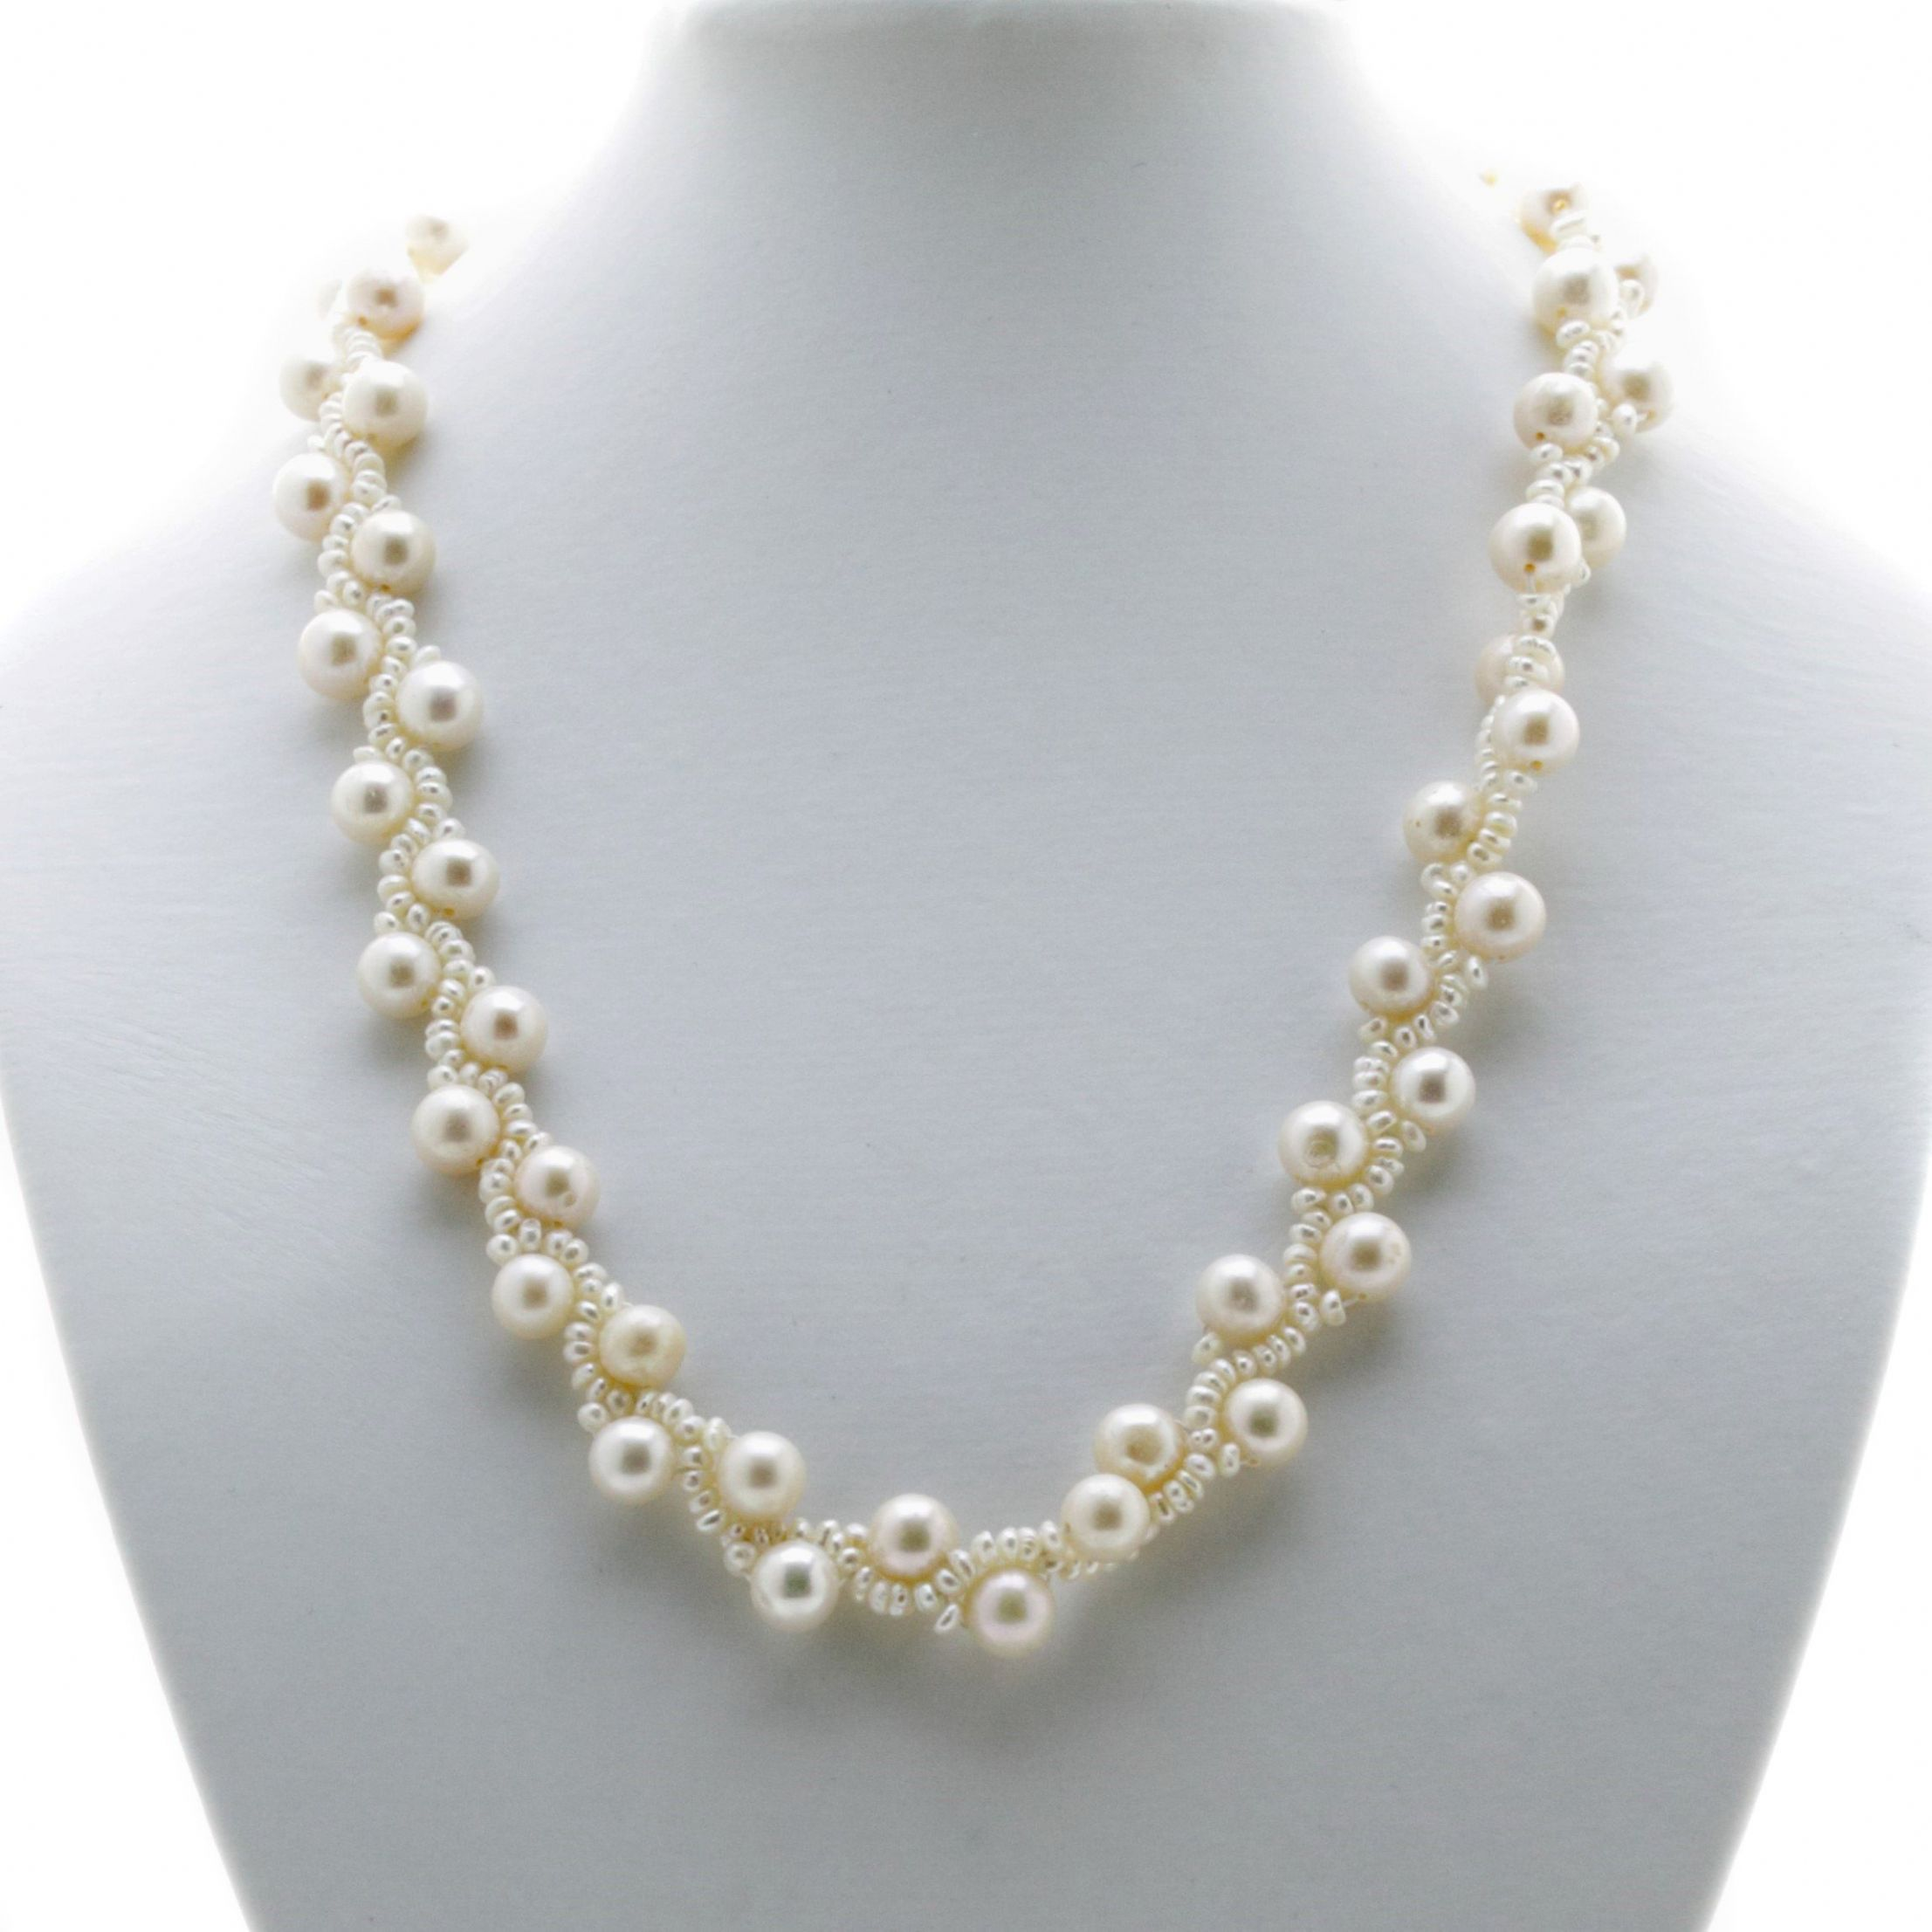 aa c freshwater three necklace pearl white necklaces pink row mm